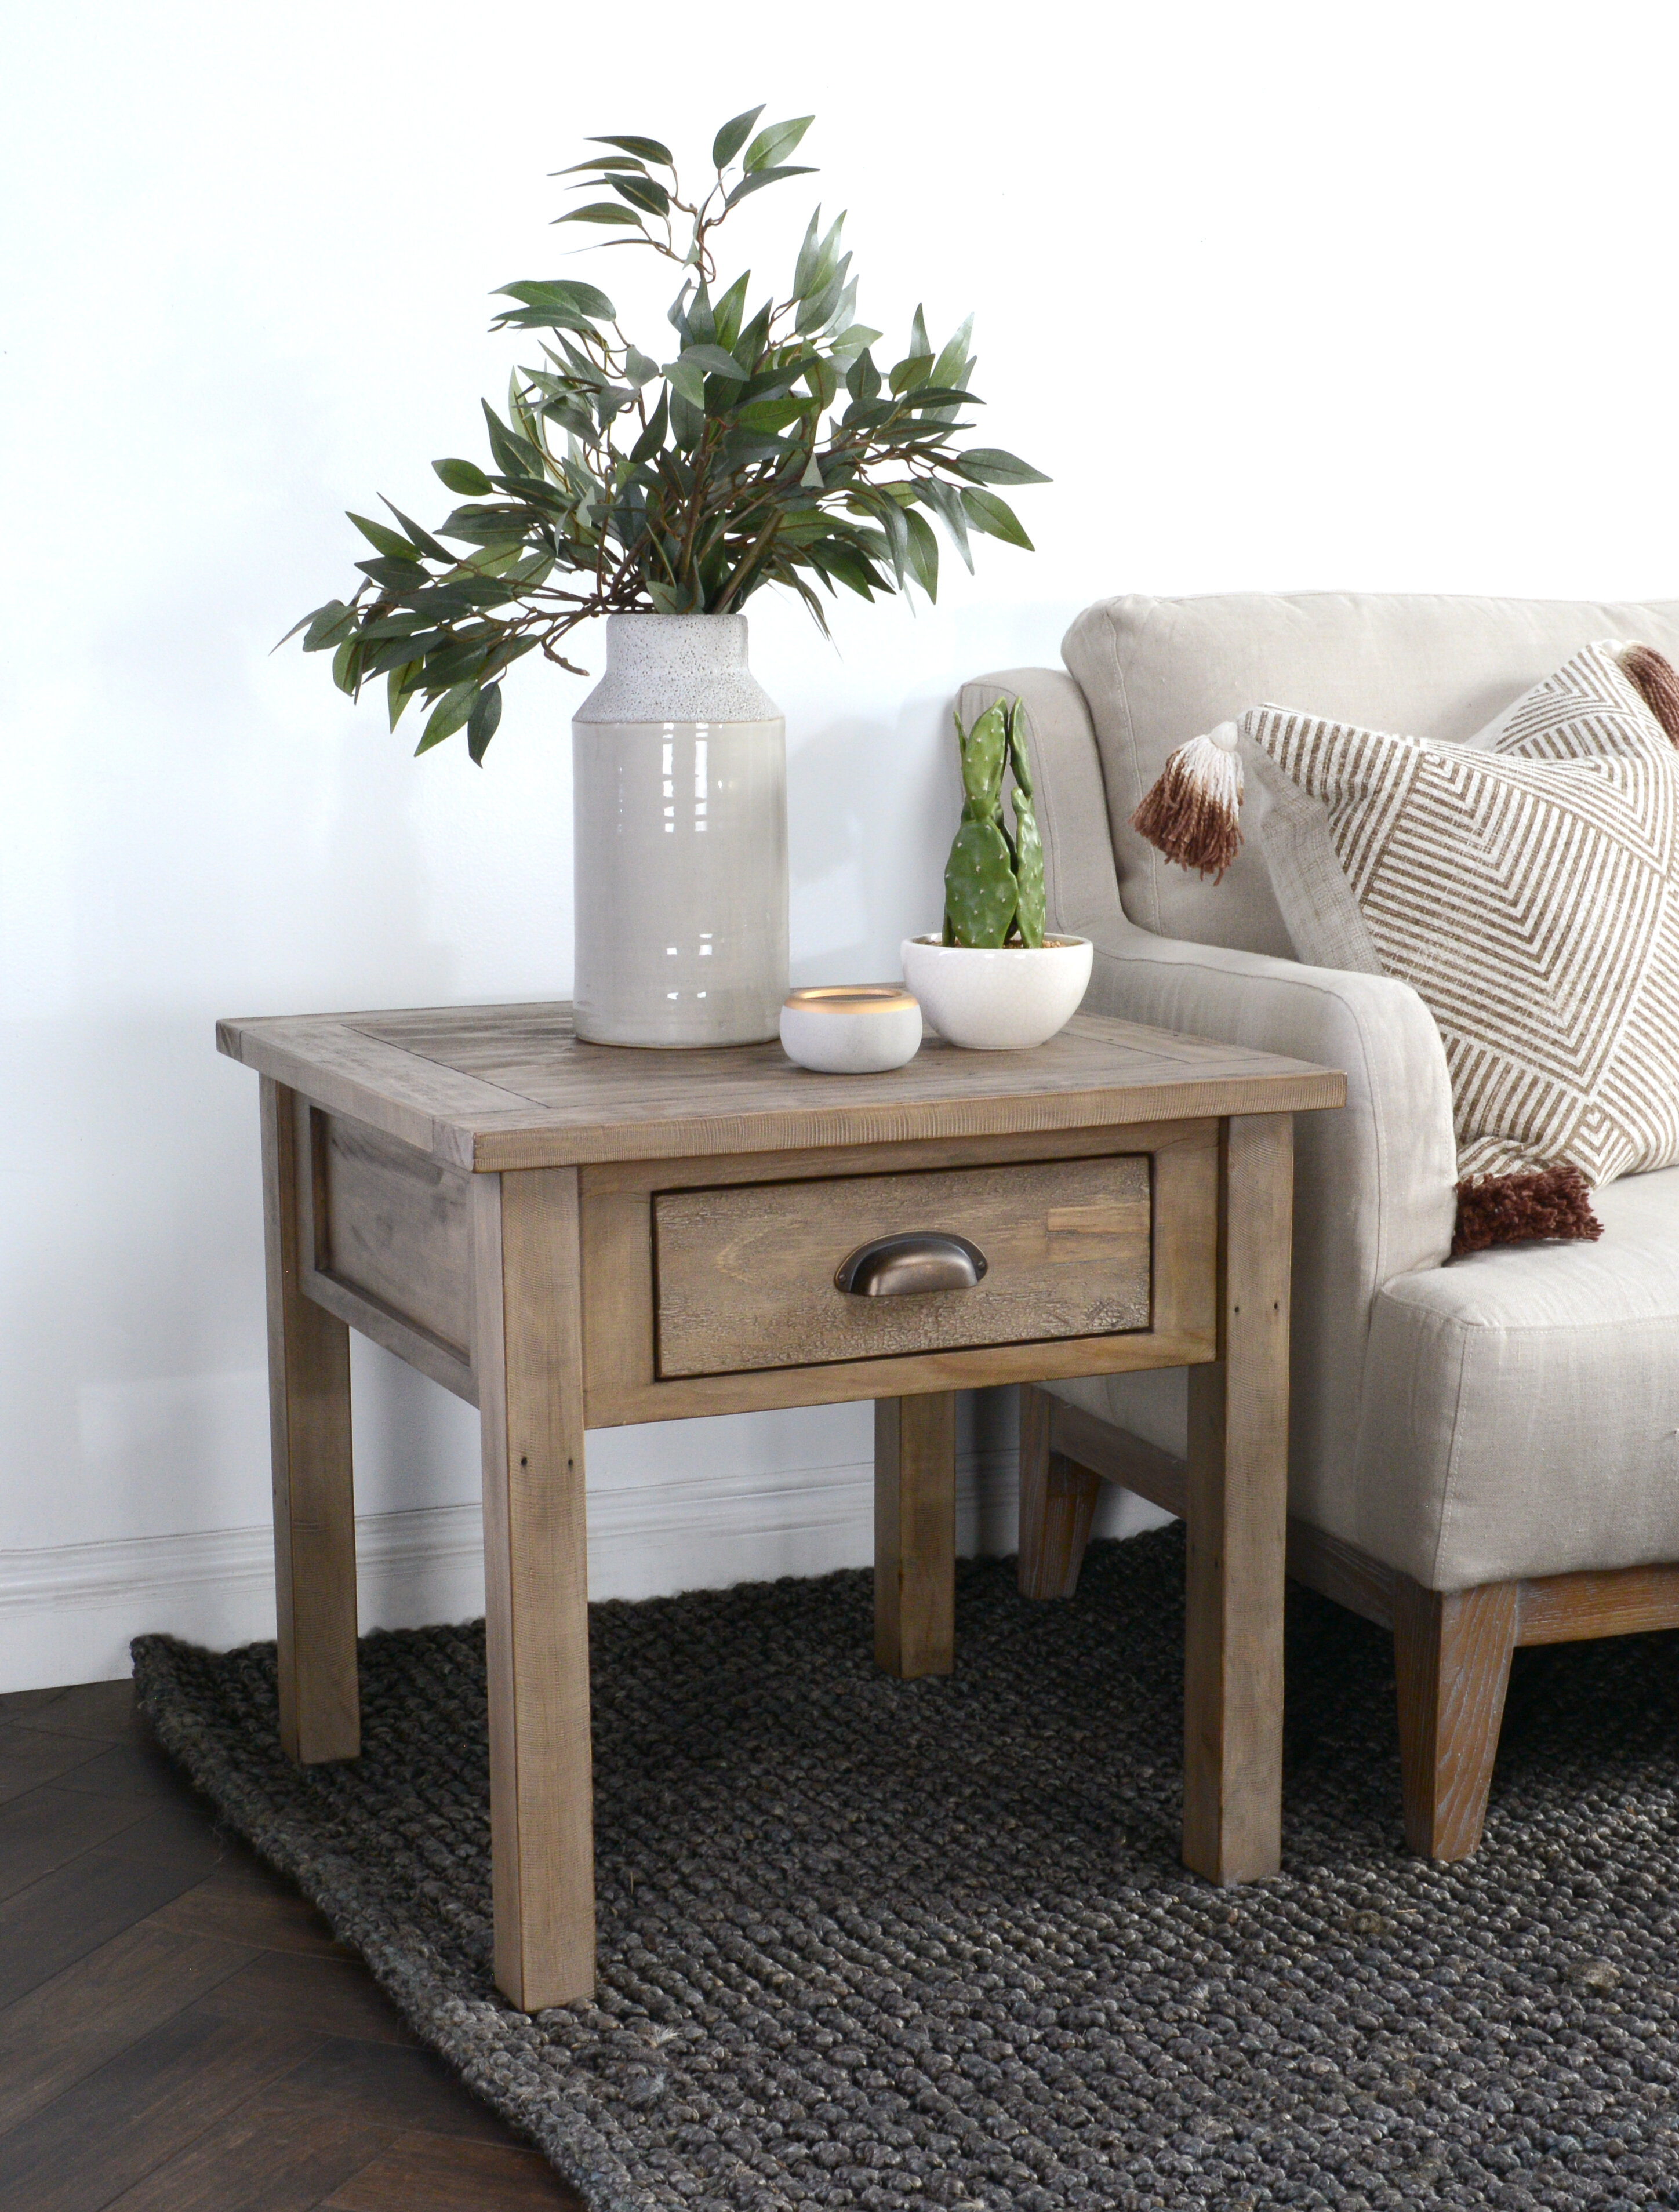 Picture of: Highland Dunes Emsworth Driftwood End Table Reviews